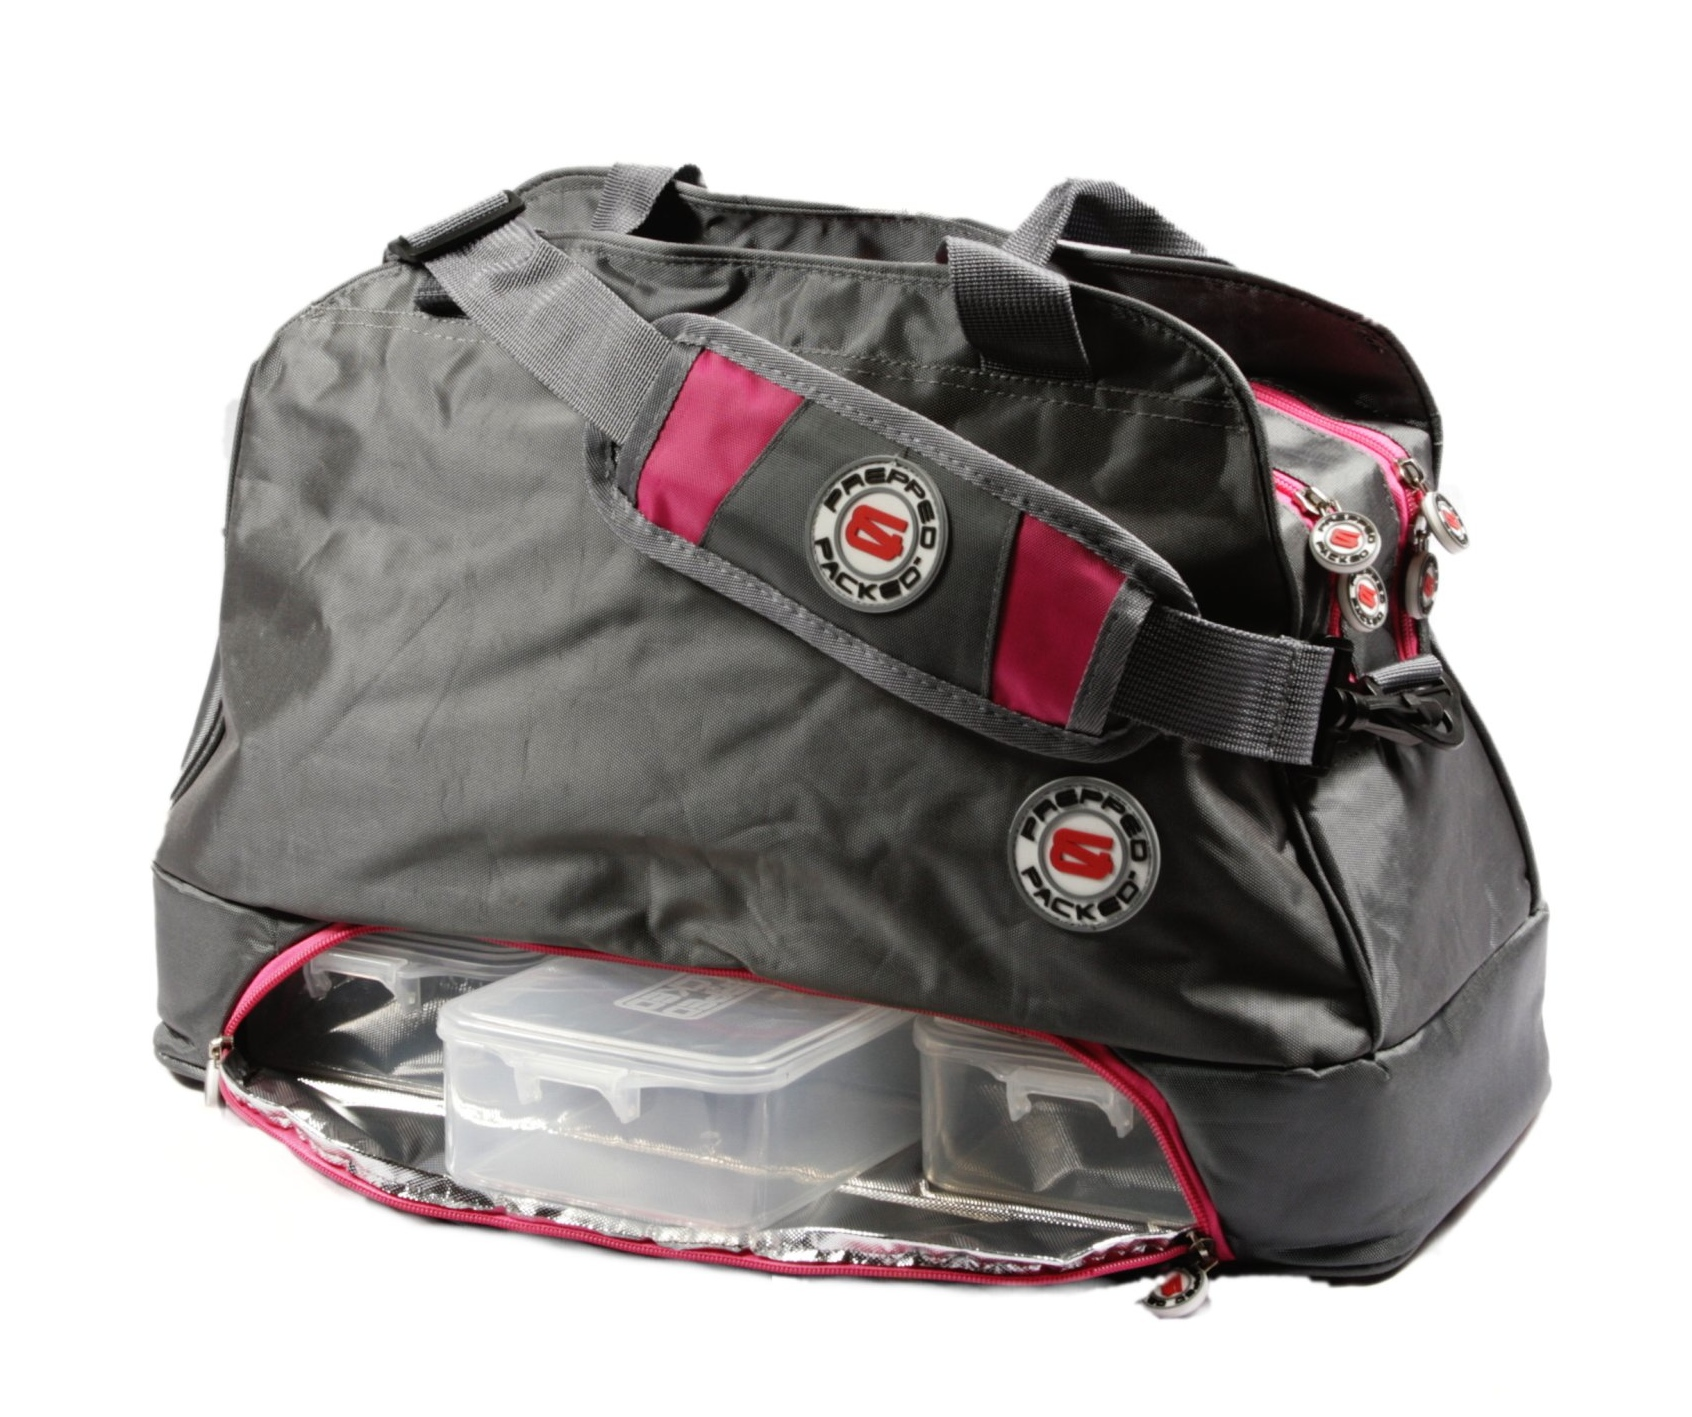 Prepped Packed Athina Gym Bag